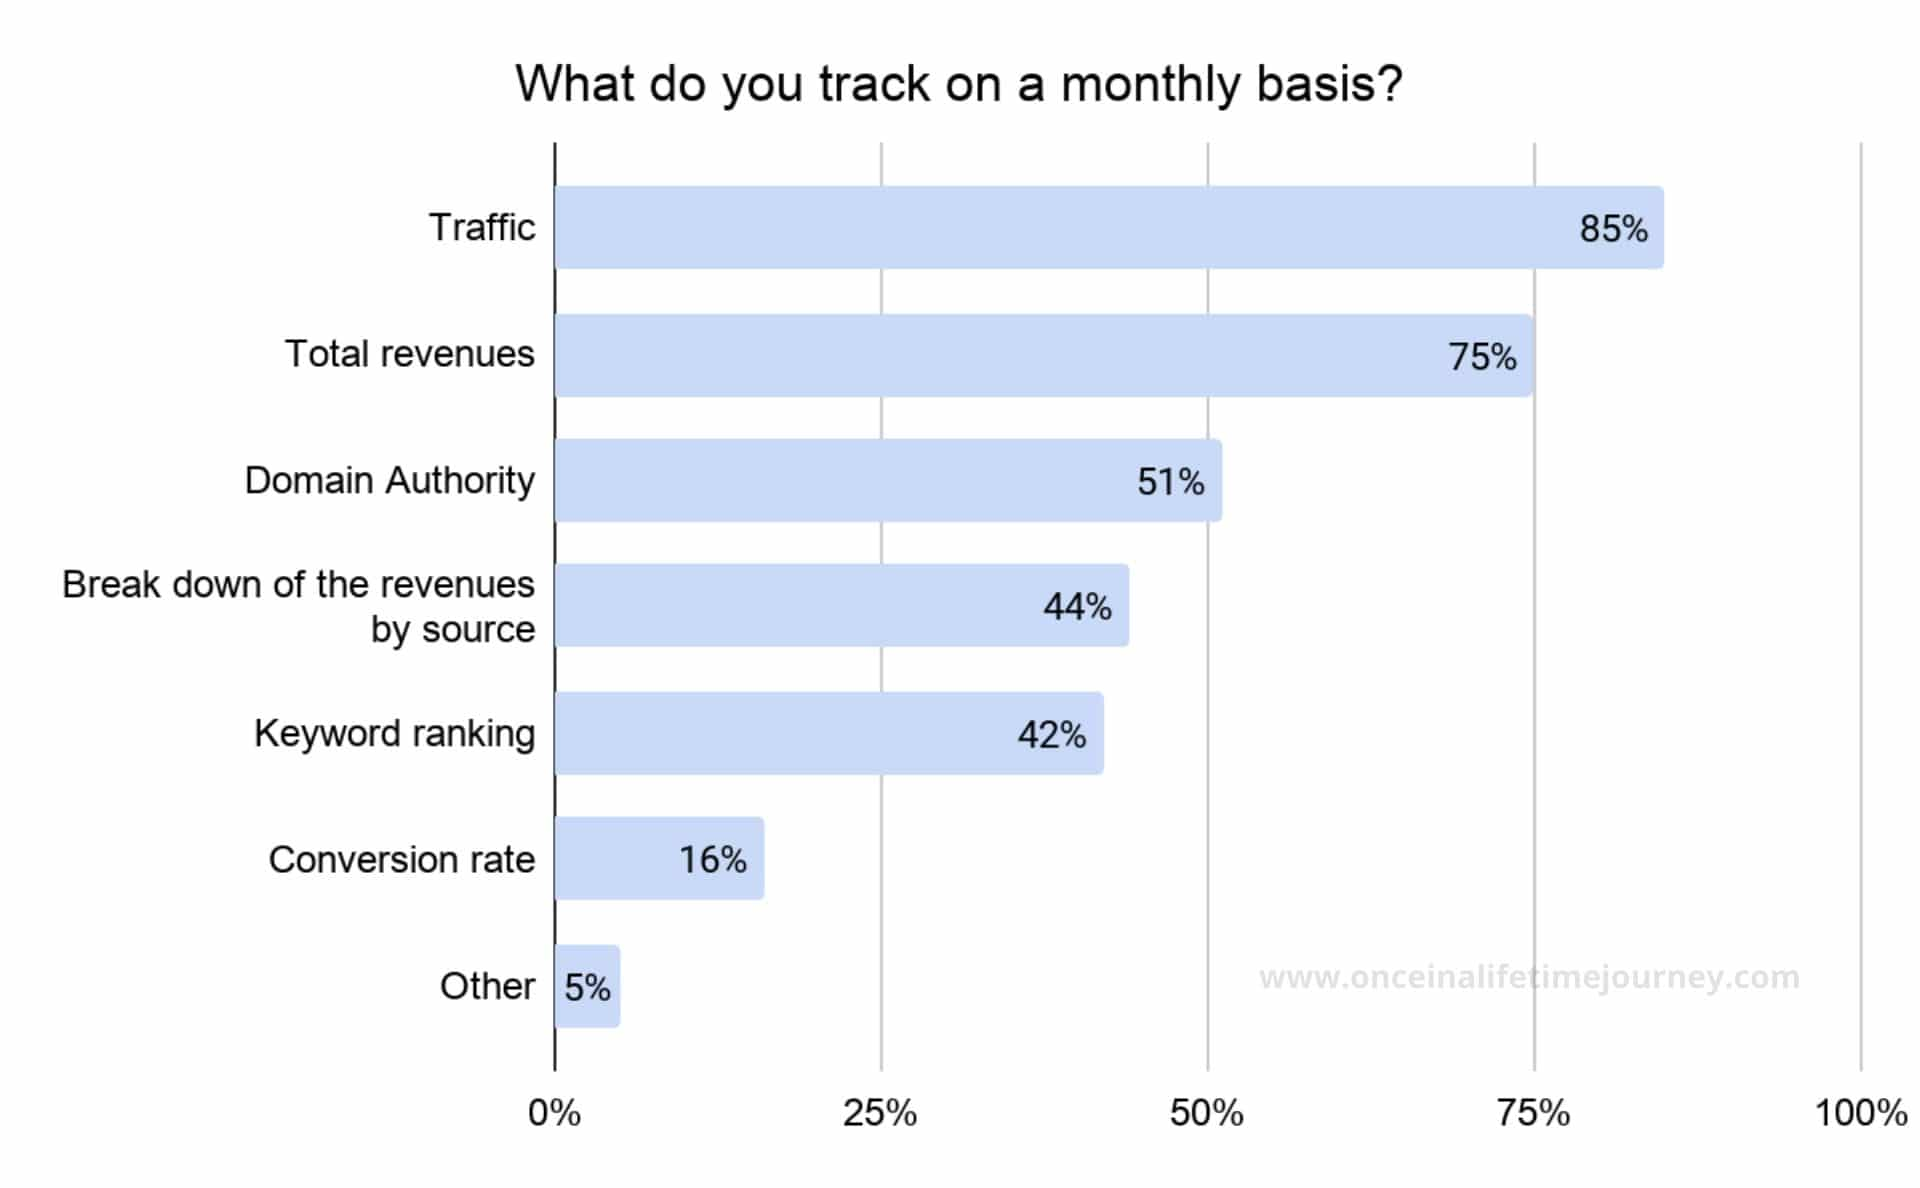 Things Content Creators track monthly